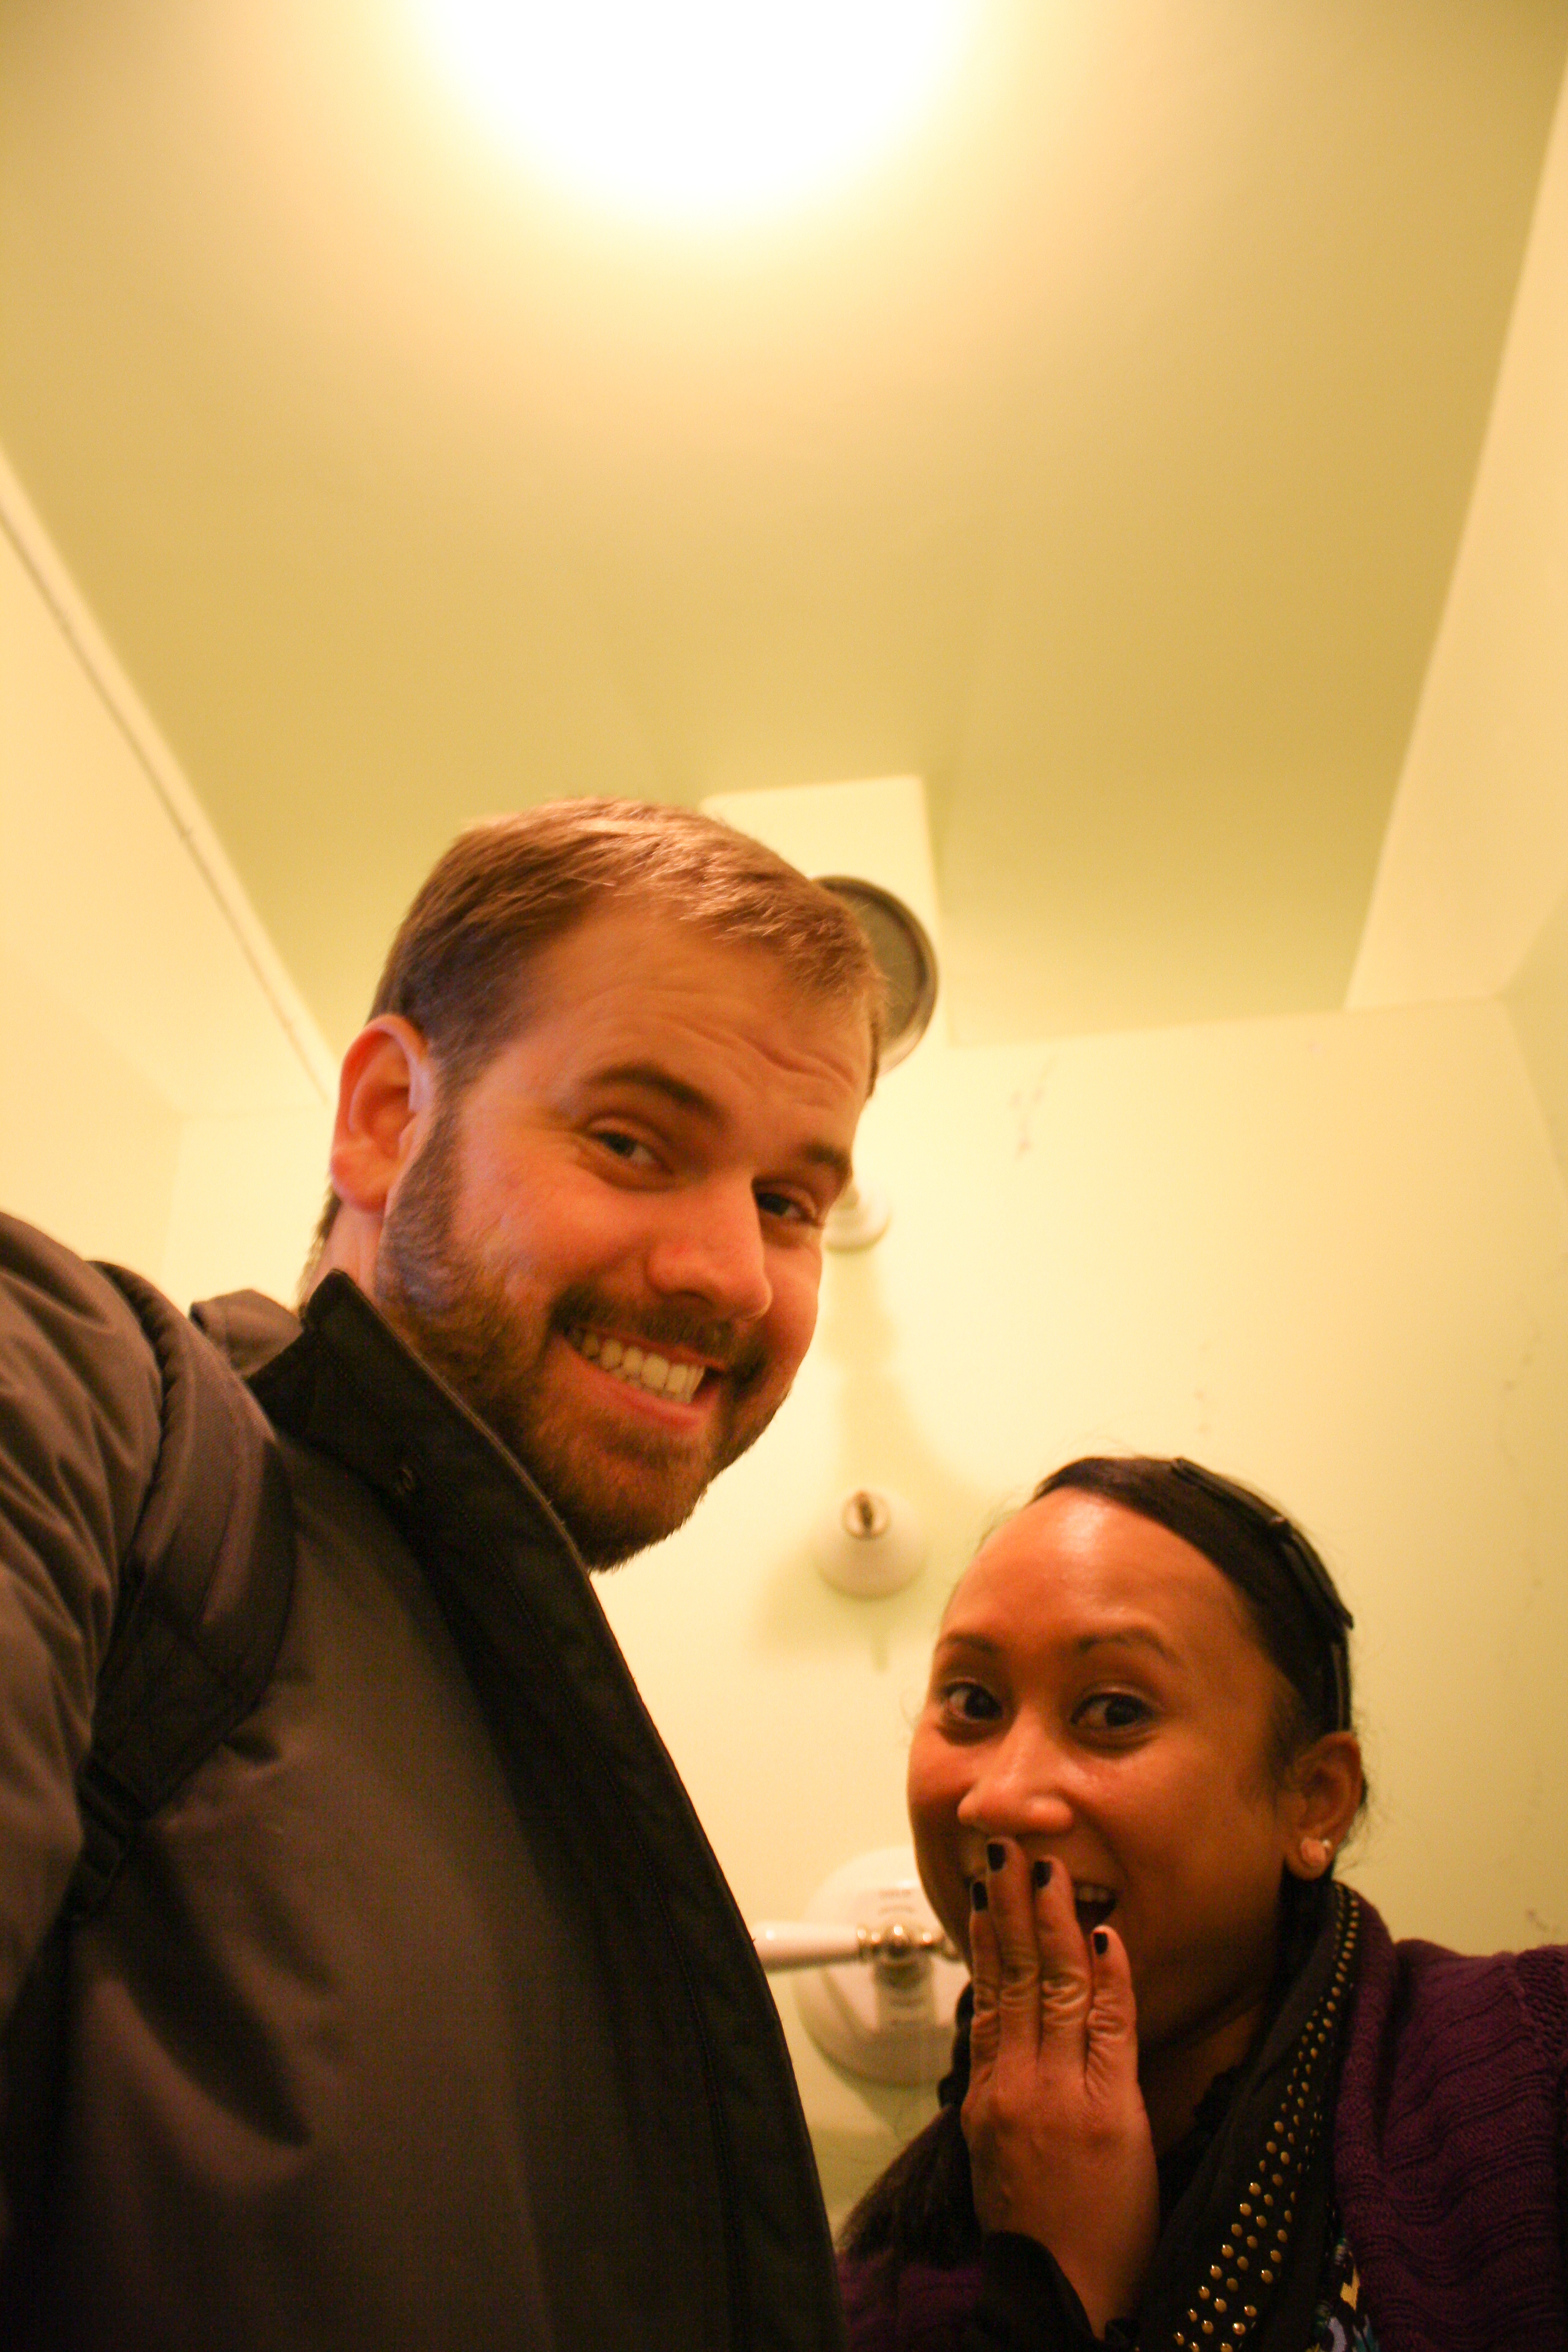 Enjoying ourselves in one of the guest showers. All-right!